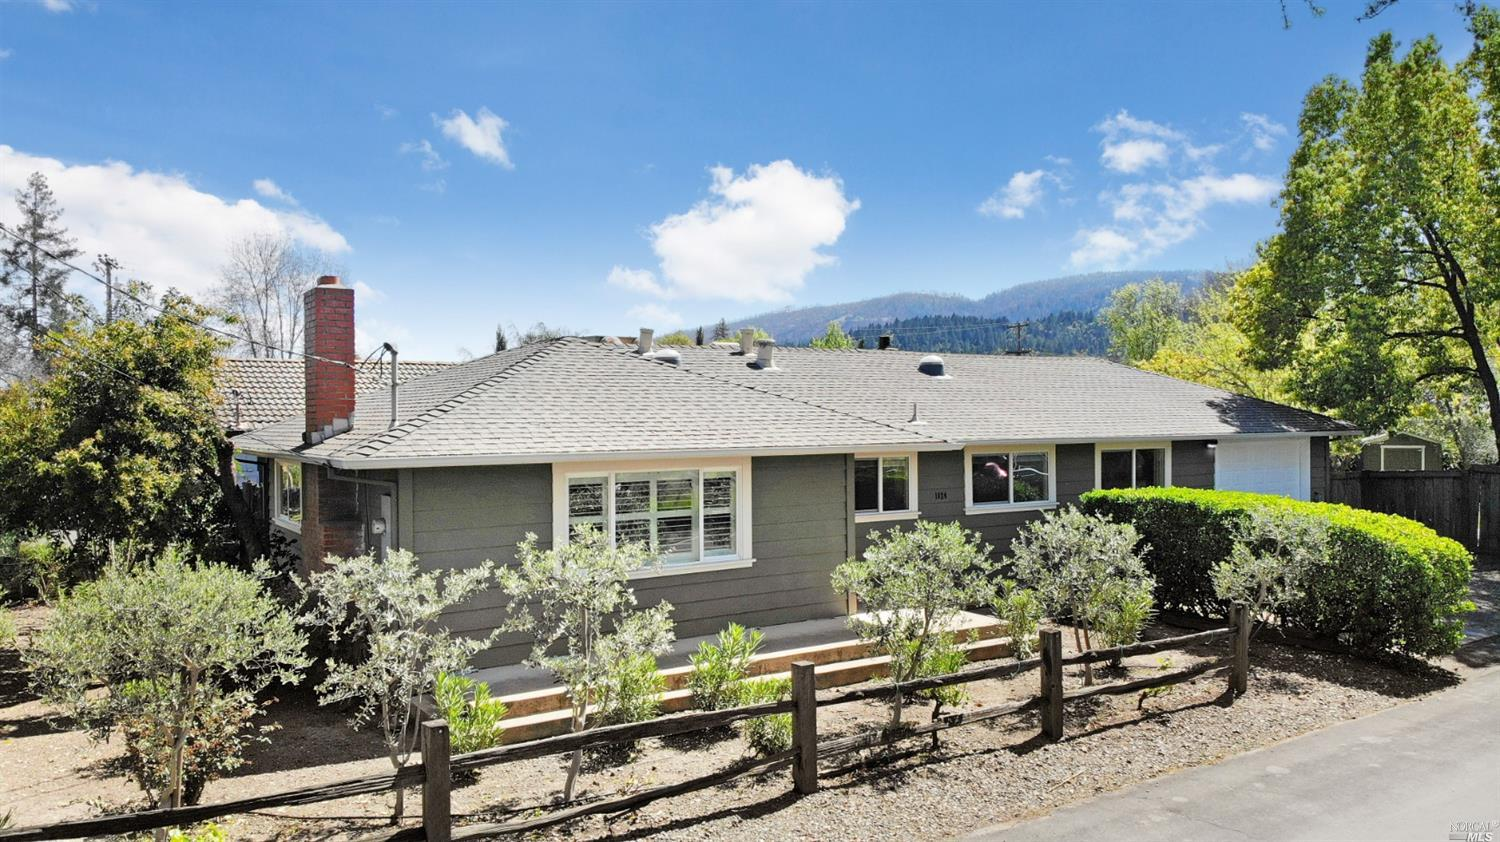 Cute home located in downtown area of Calistoga. This home offers updated bathrooms, newer windows , large custom master bedroom with slate shower. Ceiling fans in all rooms. Large private rear yard.